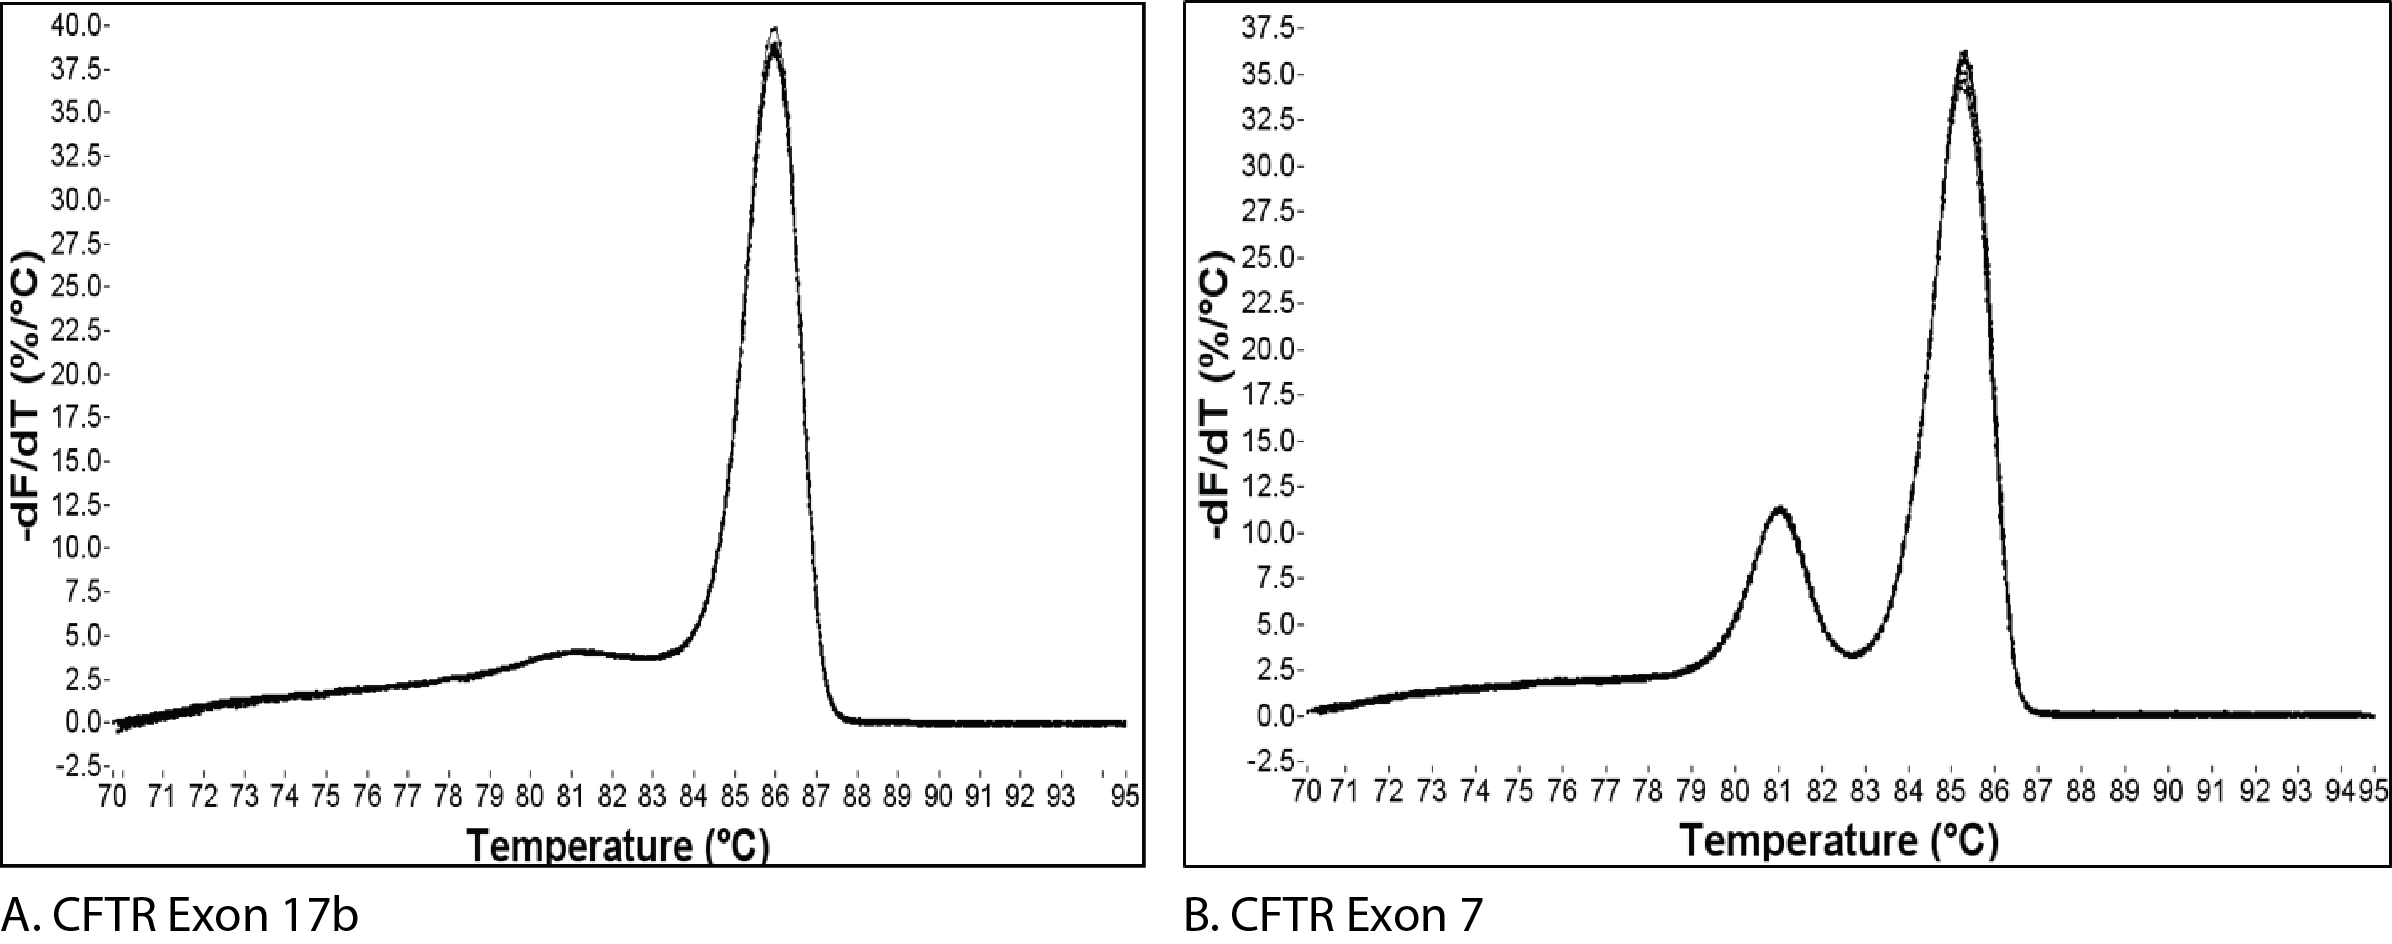 dna melting point If you mean the melting temperature of dna,then it is not any exact value as the melting temperature of dna changes with gc rich sequence,salt concentration in the medium in which the melting temperature is measured and ph of the medium.